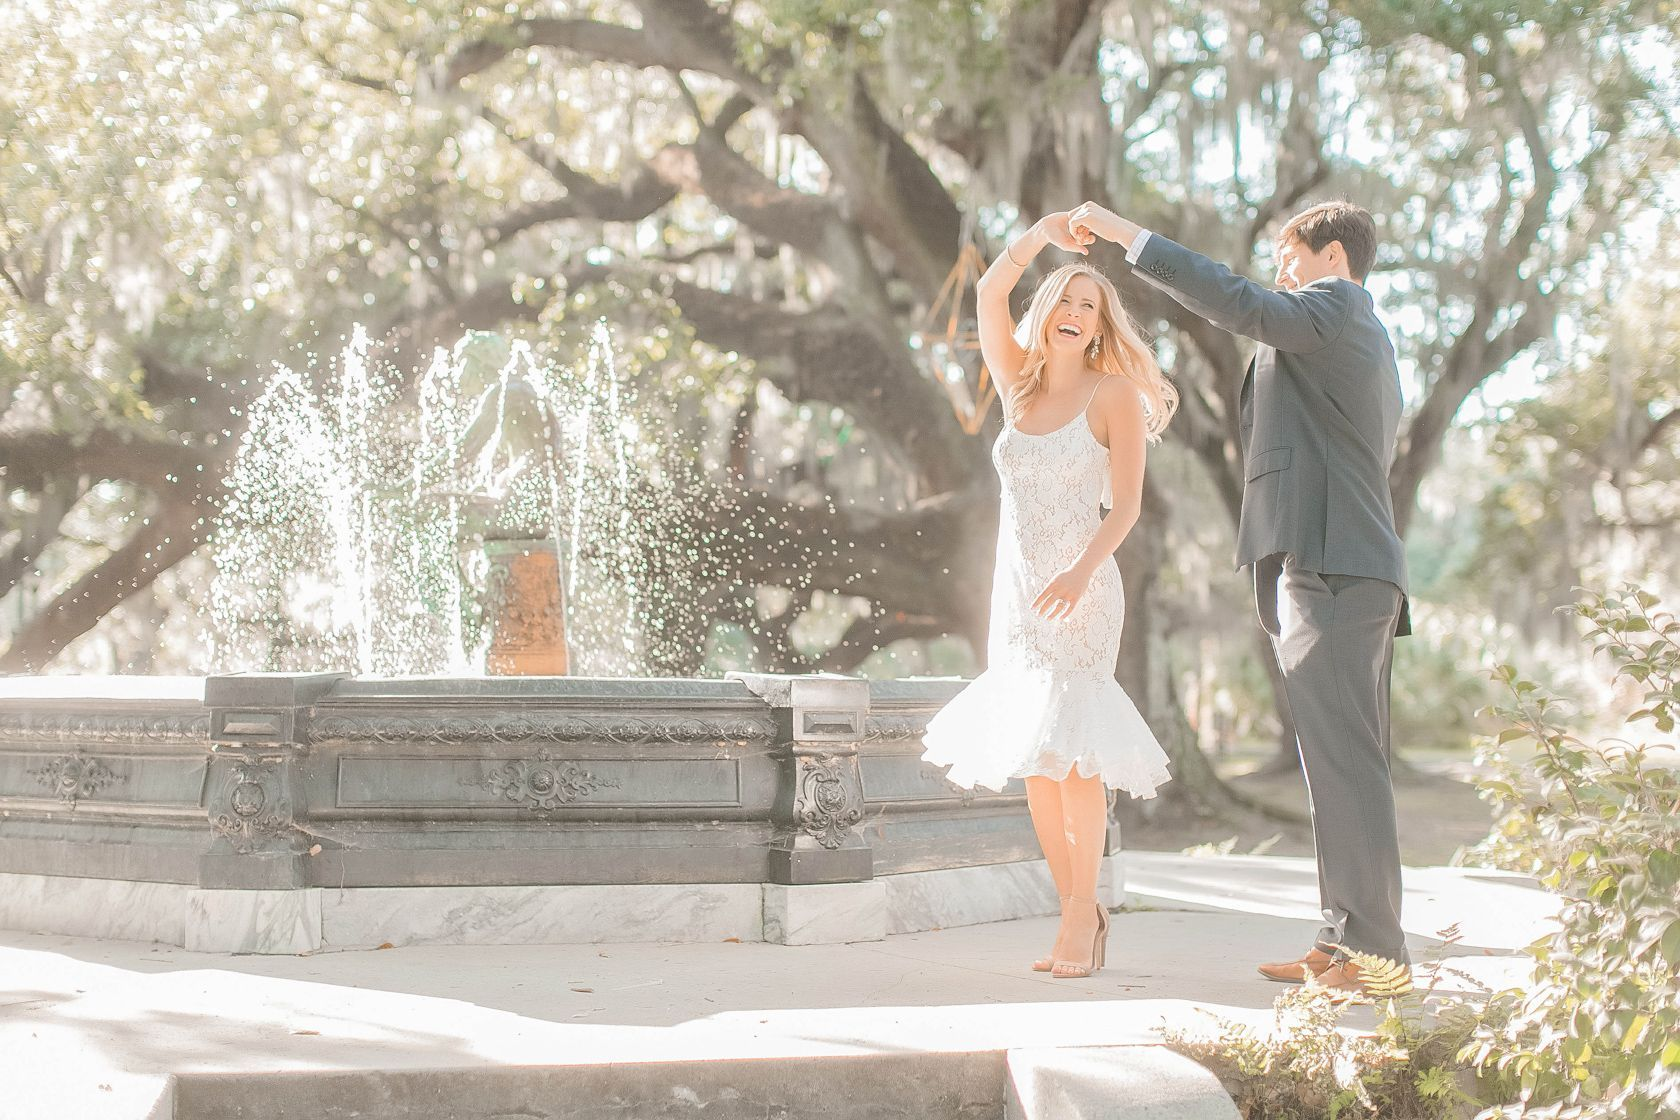 New Orleans City Park Engagement | New Orleans Wedding Photographers -  new orleans city park engagement photo by the fountain dancing New Orleans engagement session Arte  - #city #Engagement #EngagementPhotosafricanamerican #EngagementPhotosbeach #EngagementPhotoscountry #EngagementPhotosfall #EngagementPhotosideas #EngagementPhotosoutfits #EngagementPhotosposes #EngagementPhotosspring #EngagementPhotoswinter #EngagementPhotoswithdog #Orleans #Park #Photographers #summerEngagementPhotos #uniqu